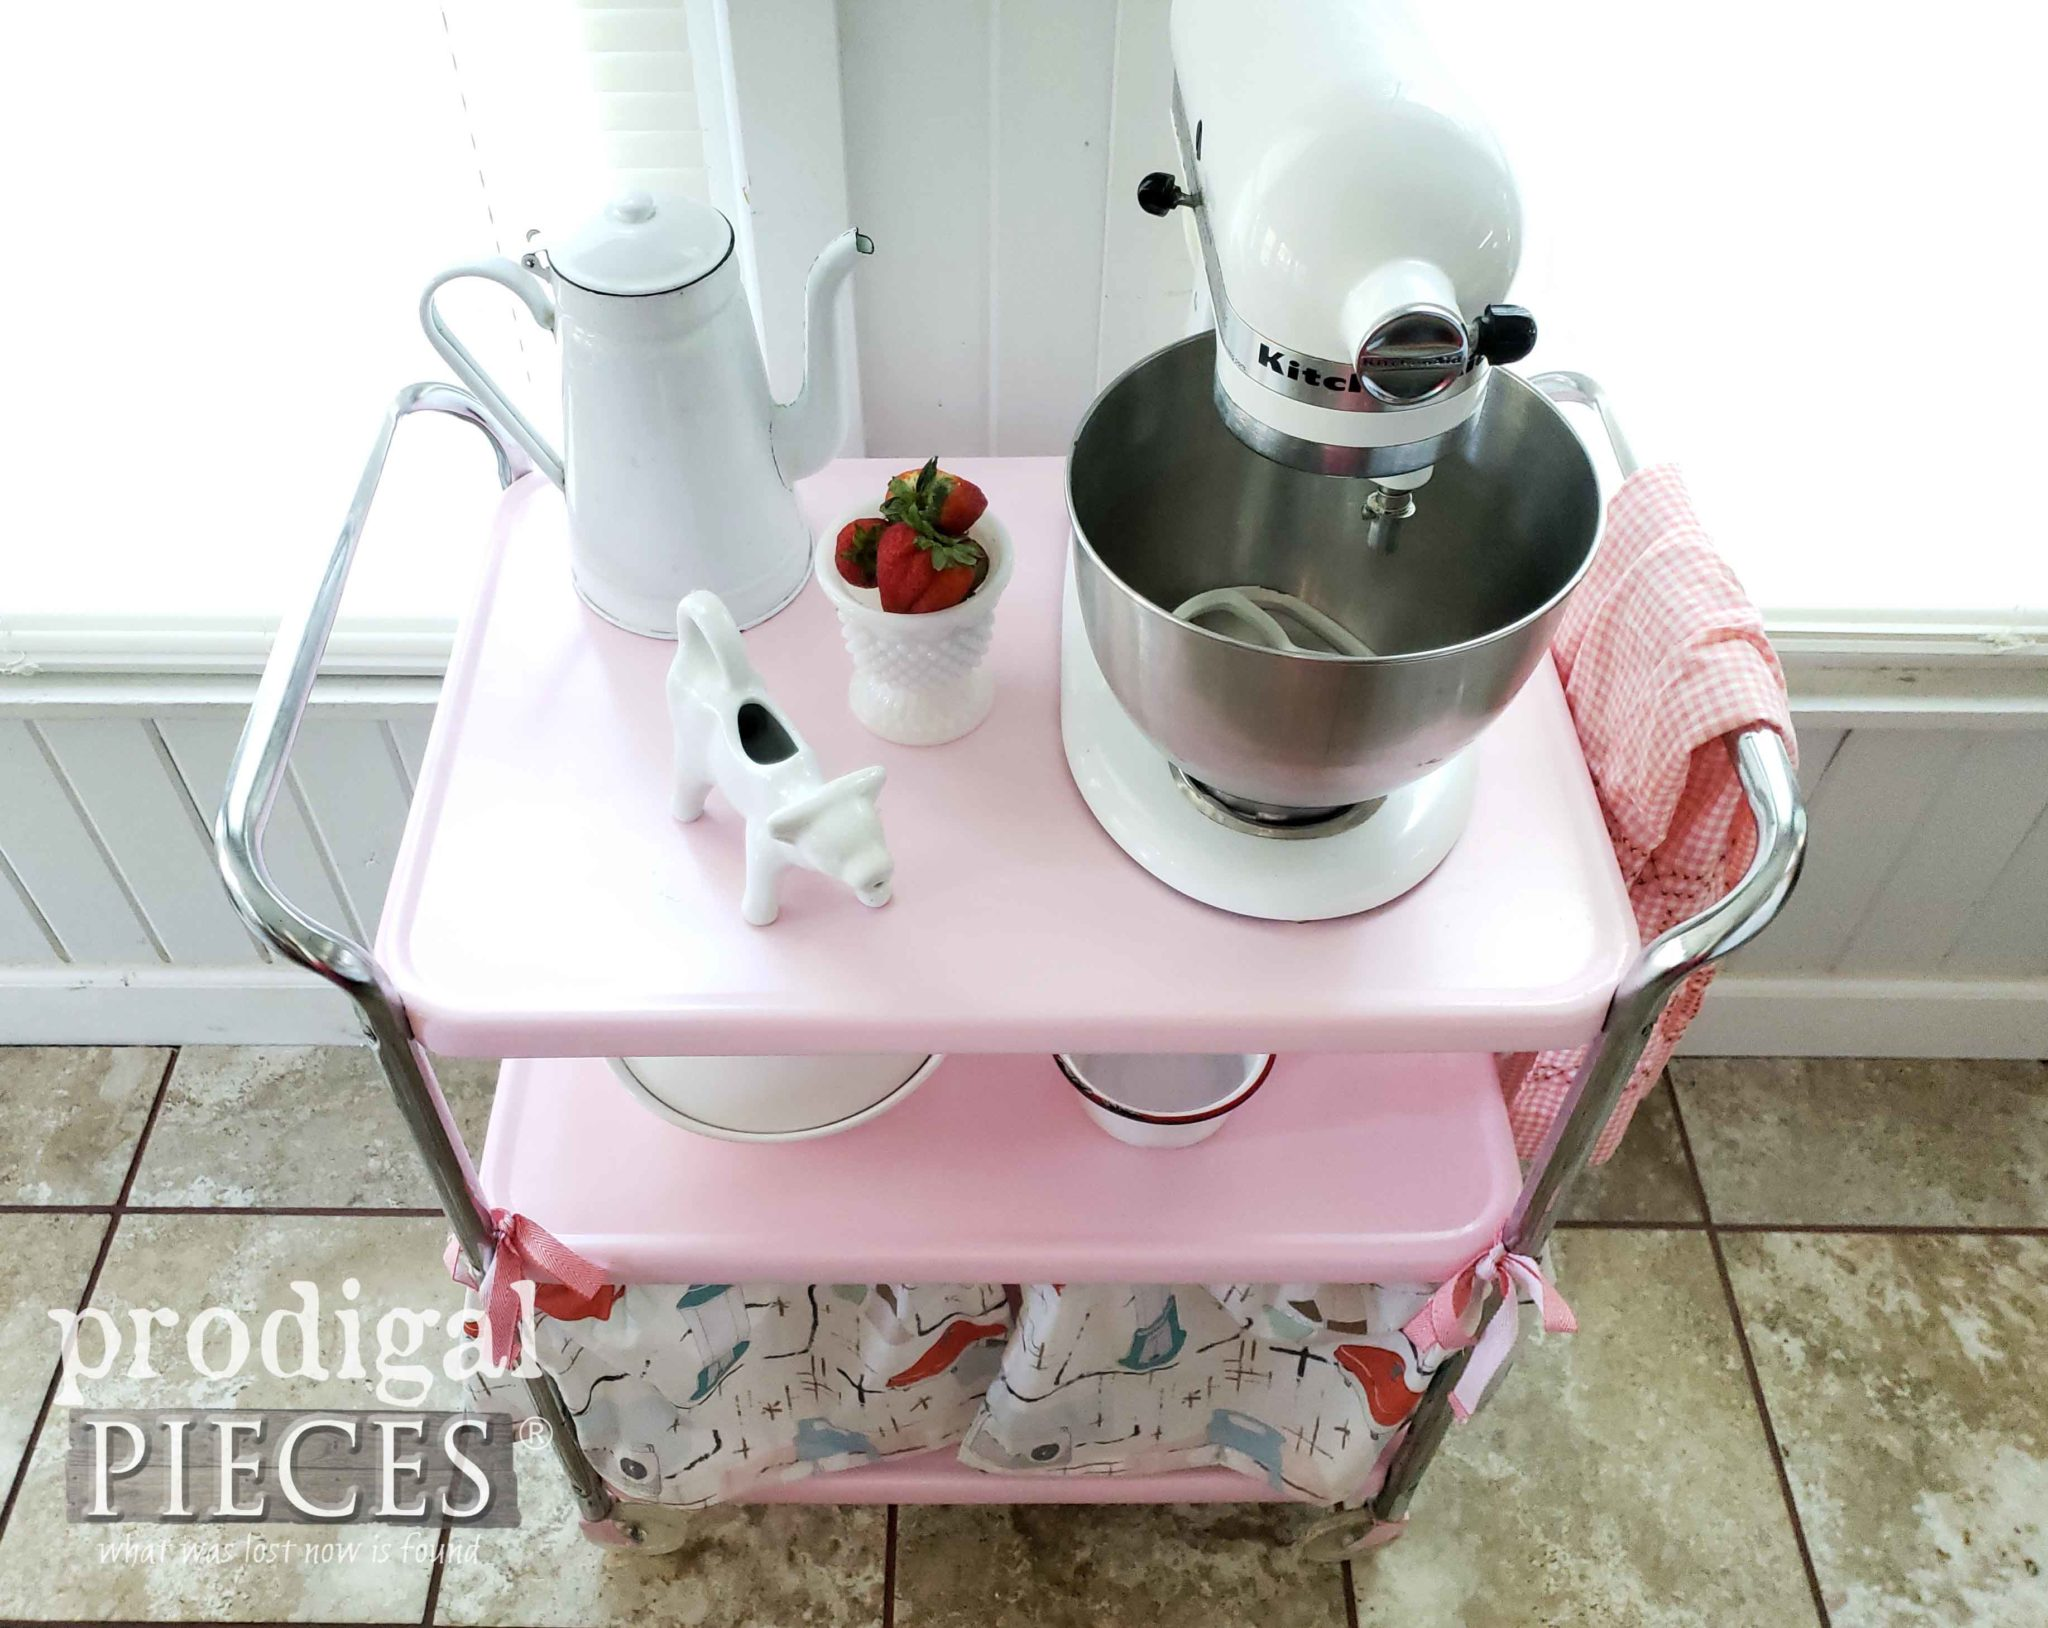 Top View of Vintage Cosco Cart in Pink by Larissa of Prodigal Pieces | prodigalpieces.com #prodigalpieces #vintage #retro #home #homedecor #furniture